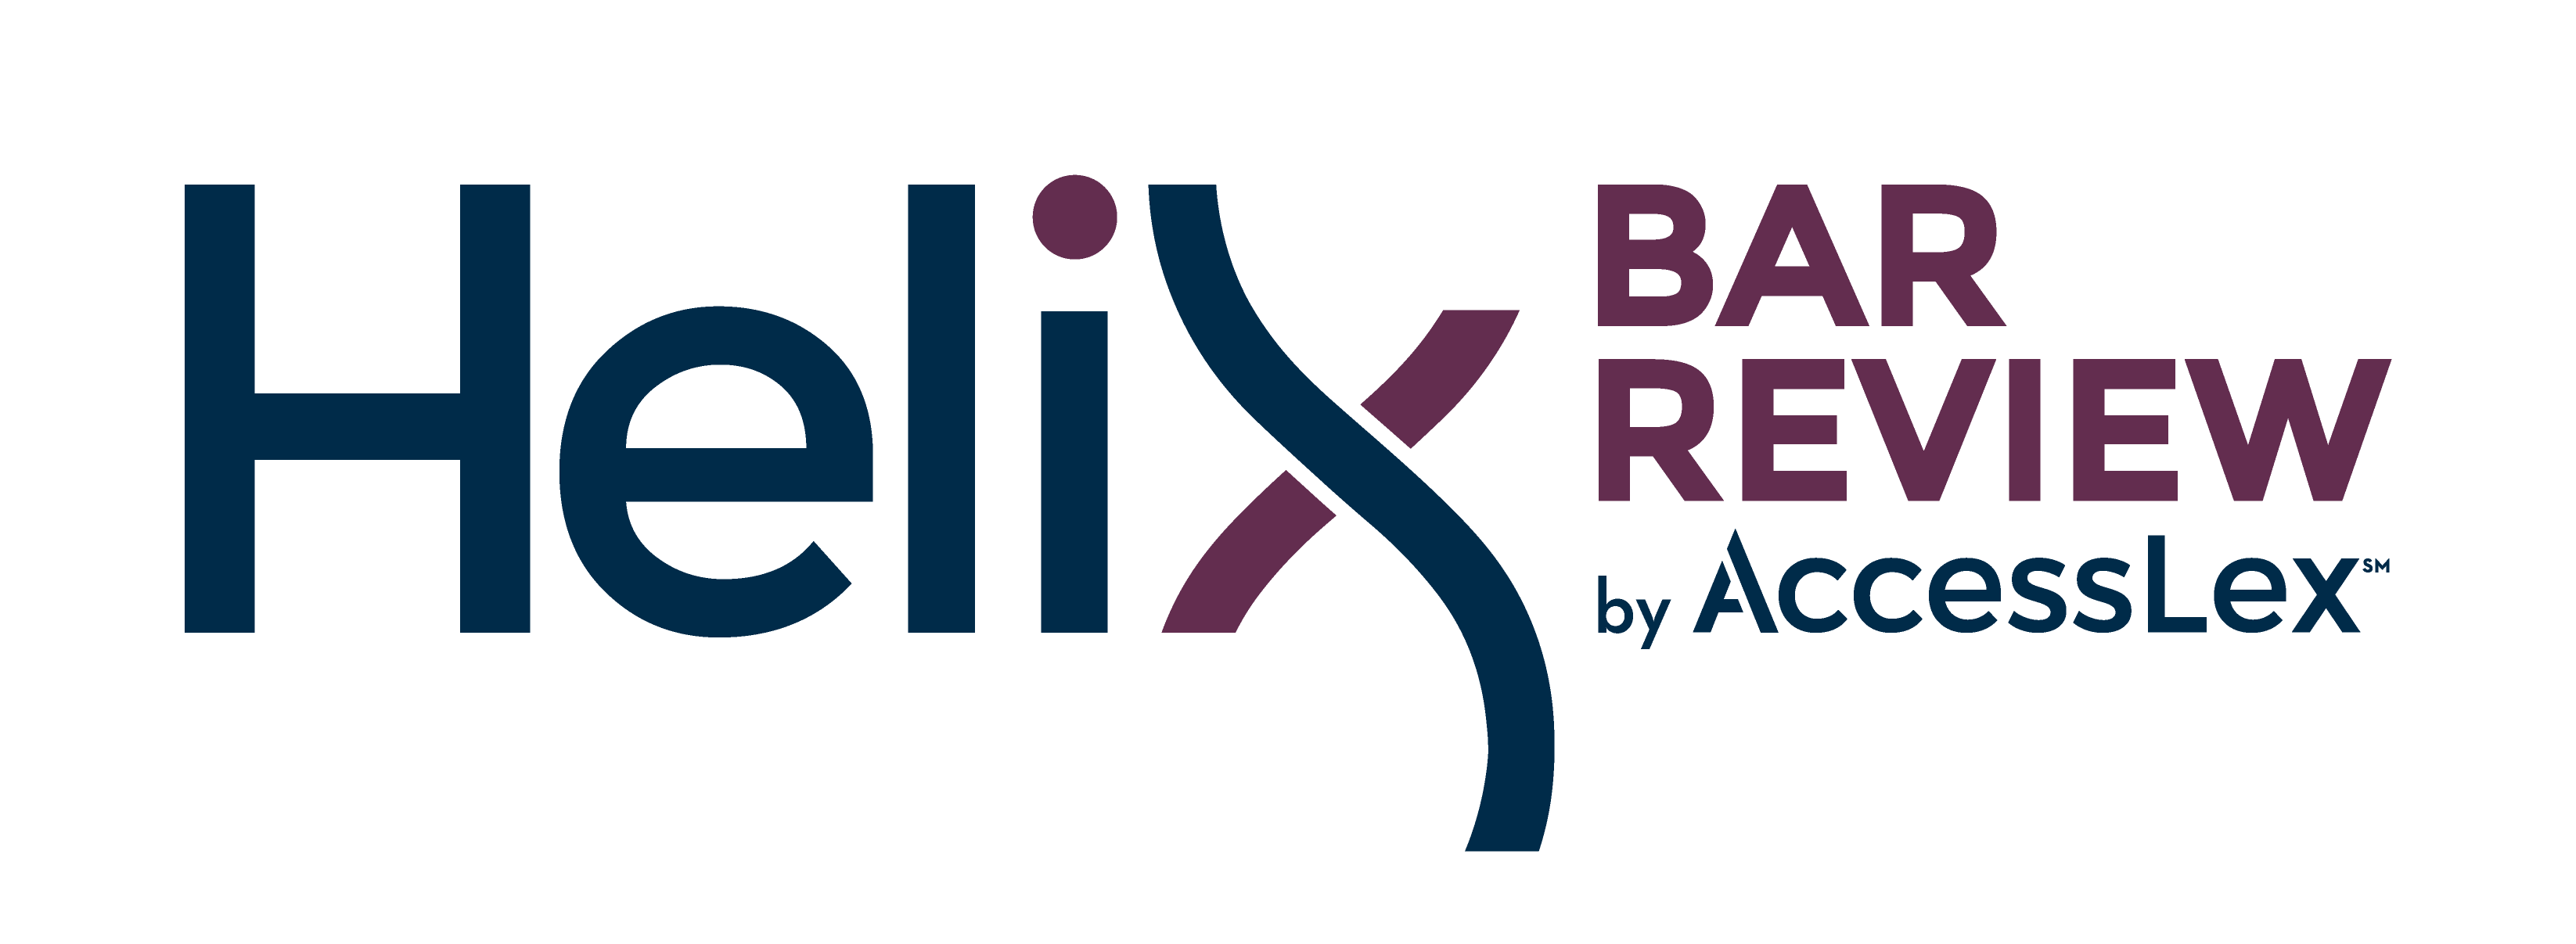 Helix Bar Review